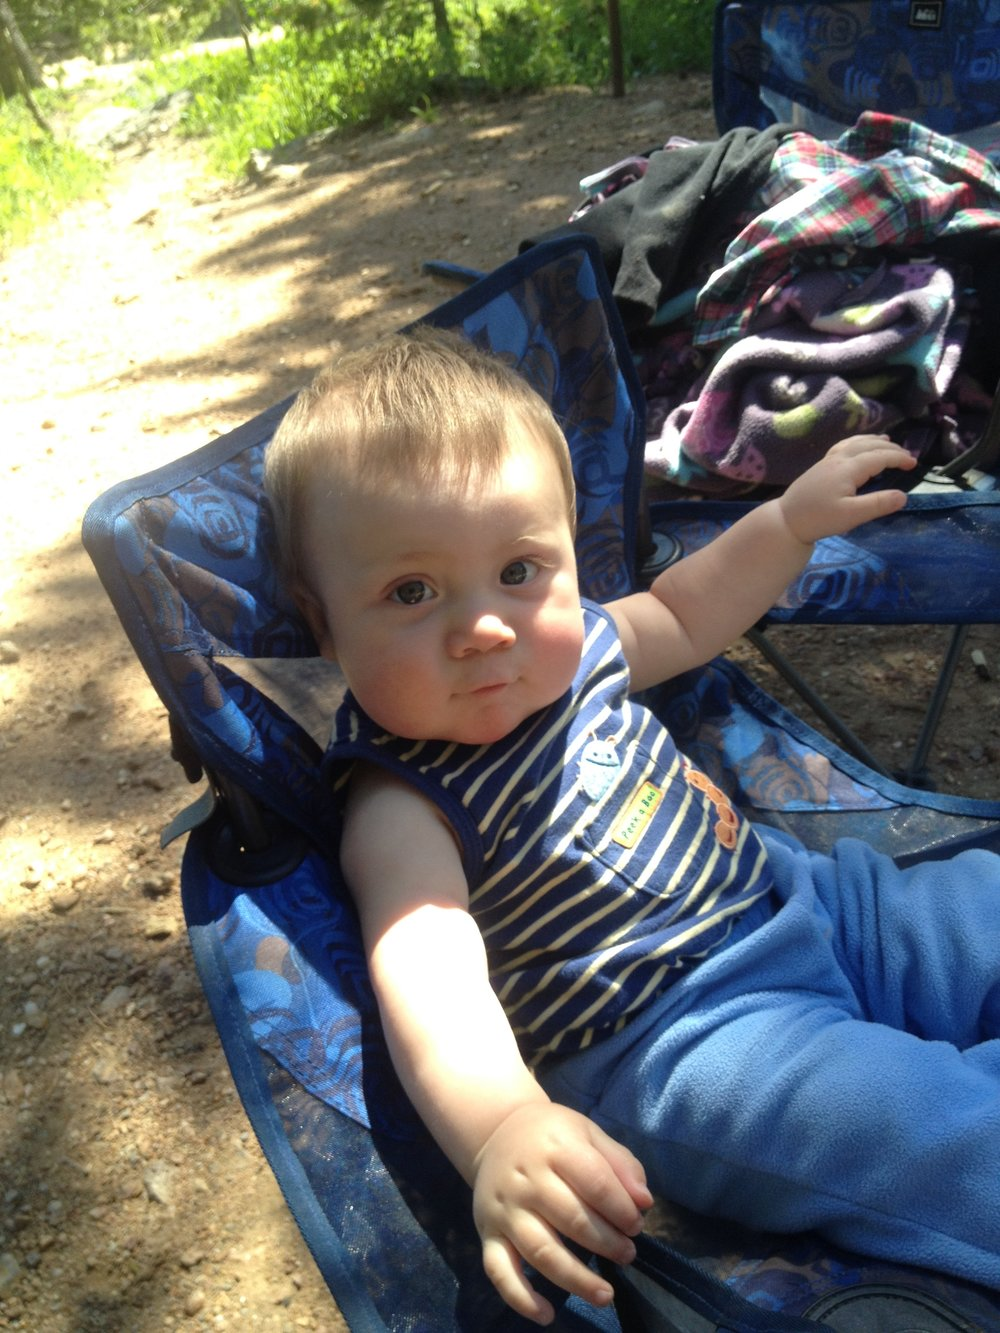 My youngest feeling right at home on a camping trip!